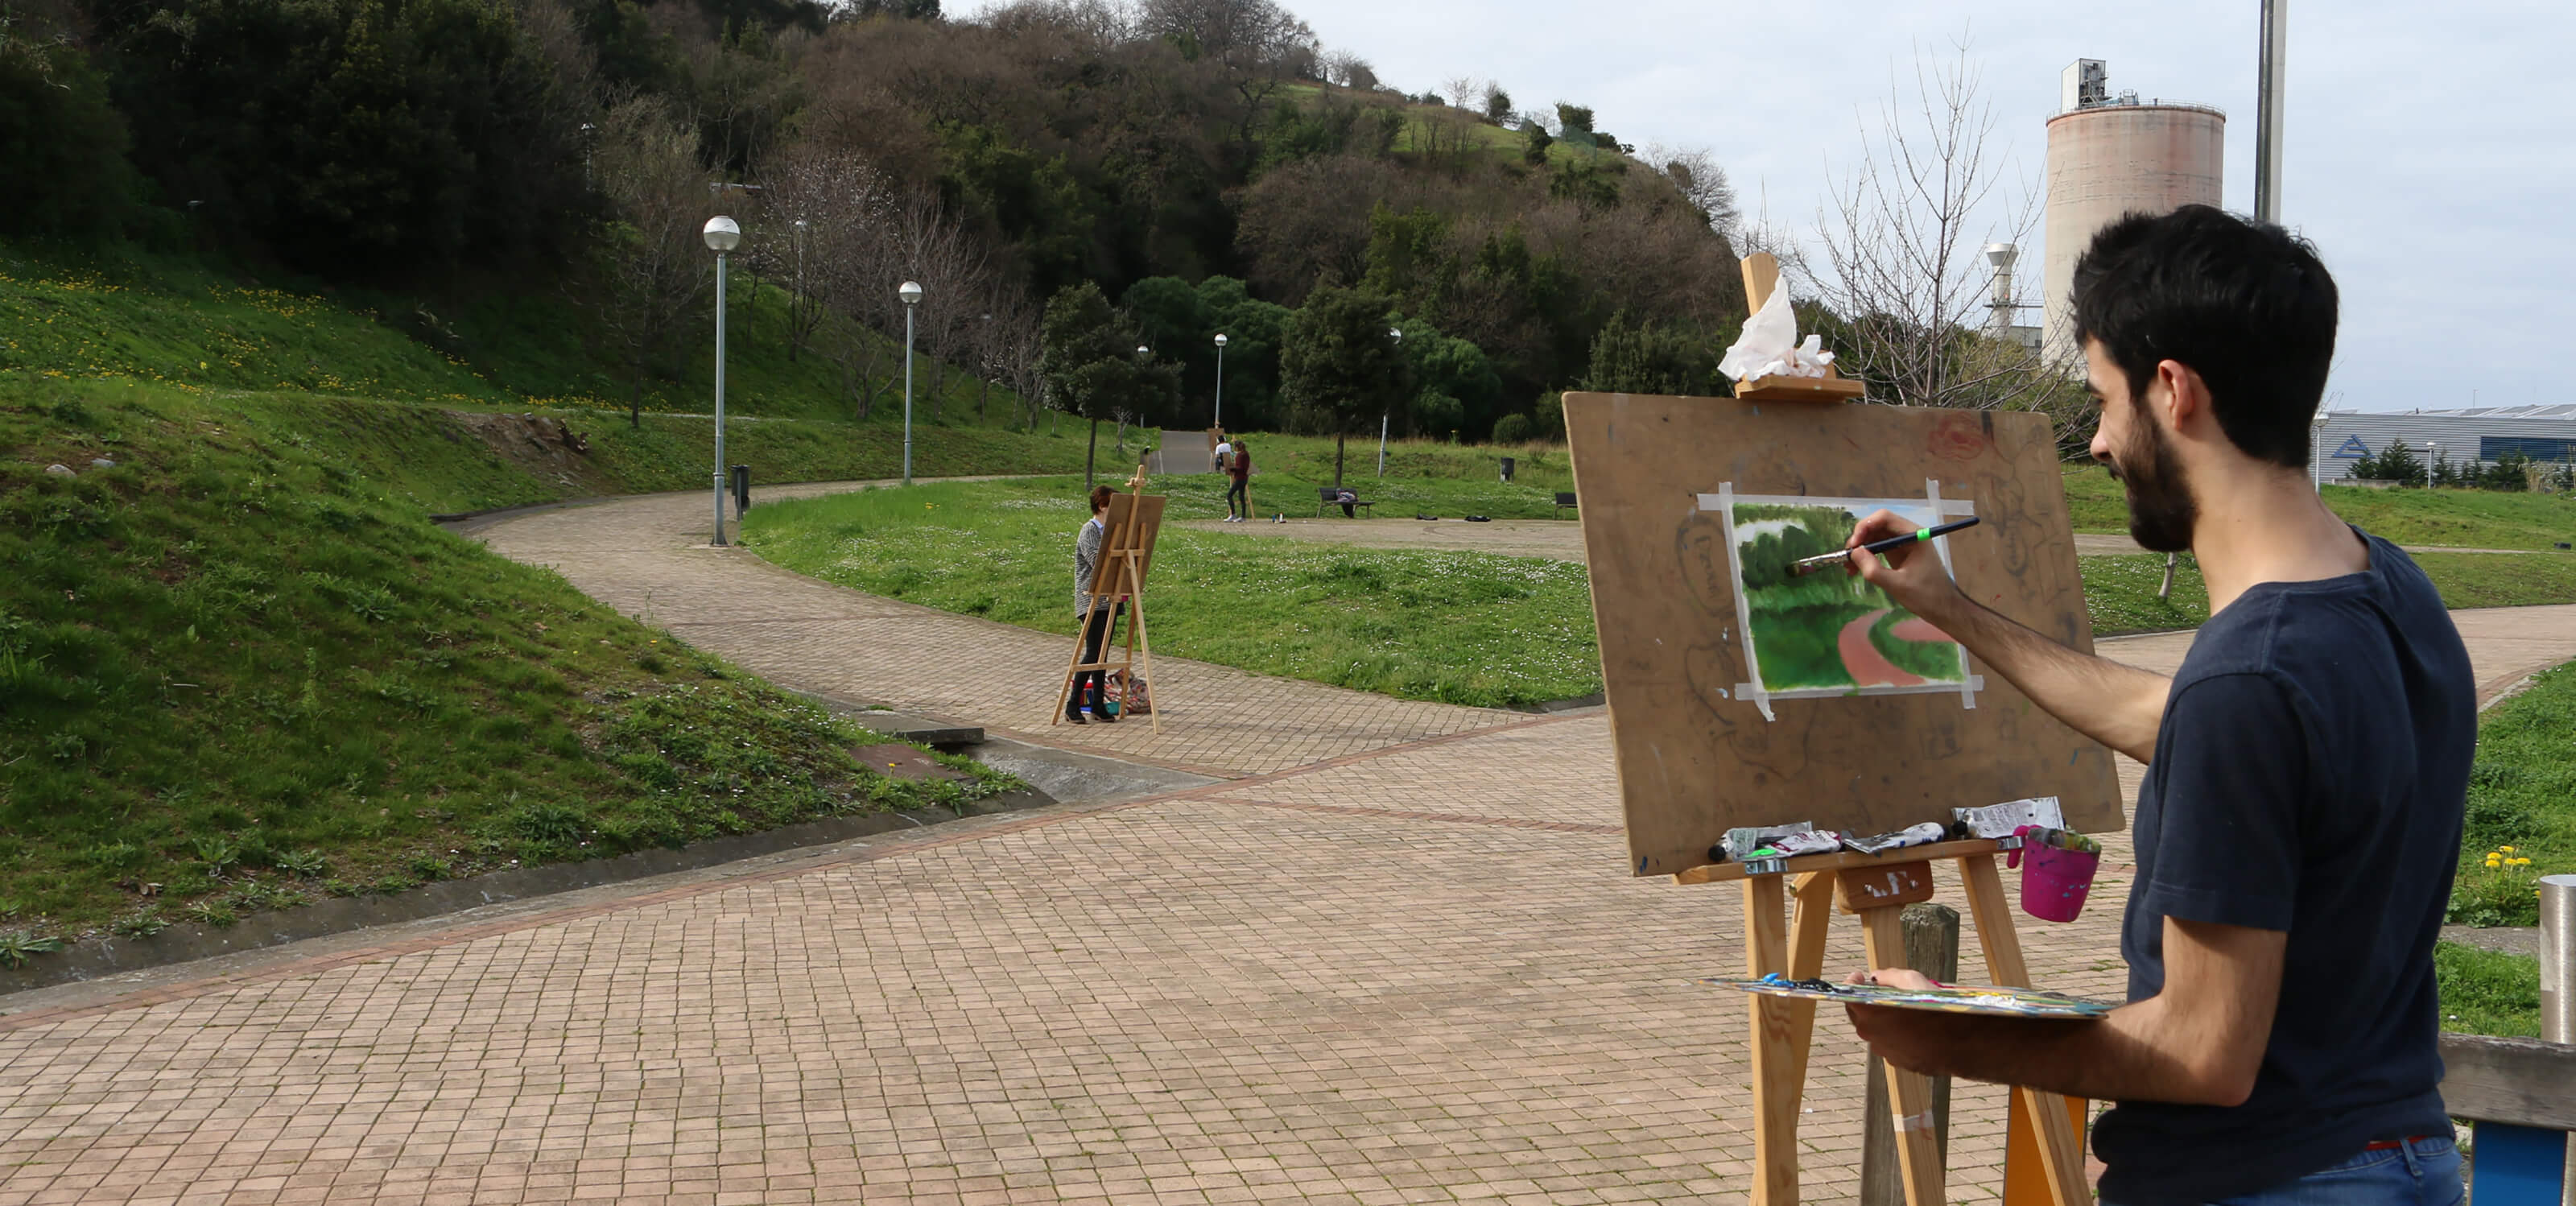 DigiPen Europe-Bilbao students painting at easels in a park